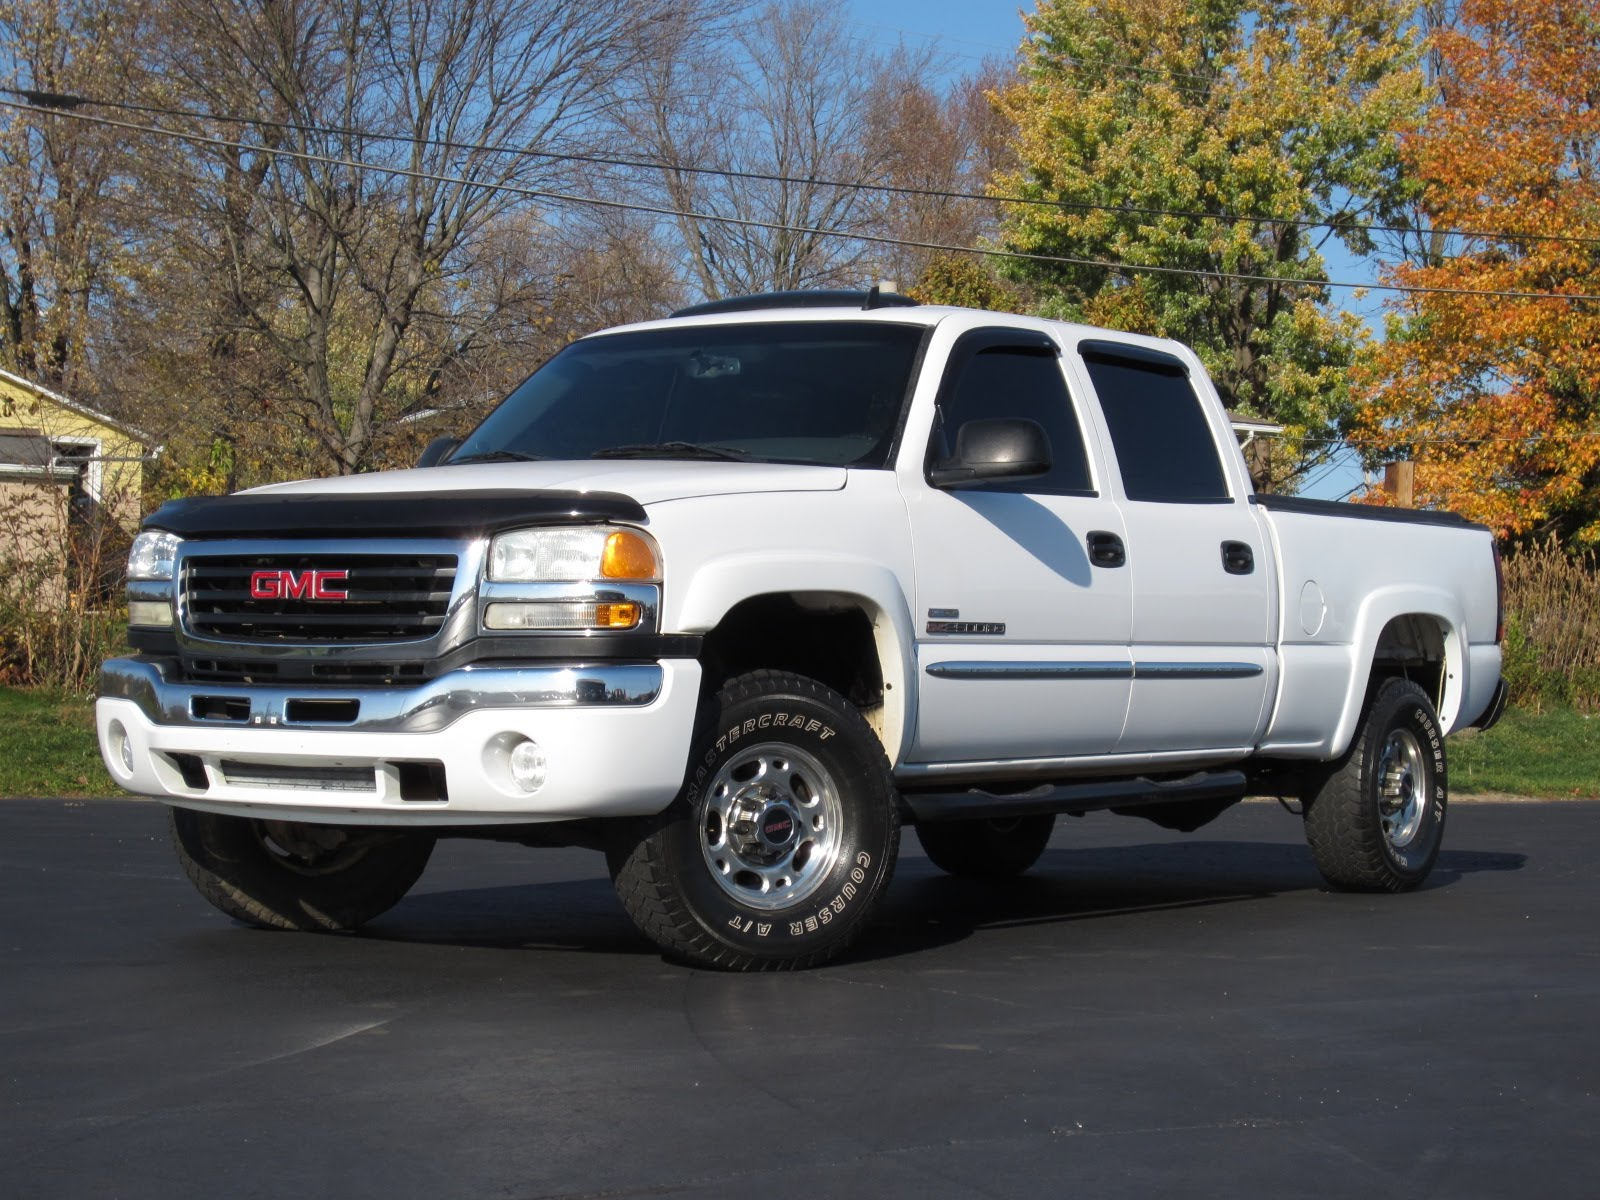 2006 GMC Sierra 2500hd #17